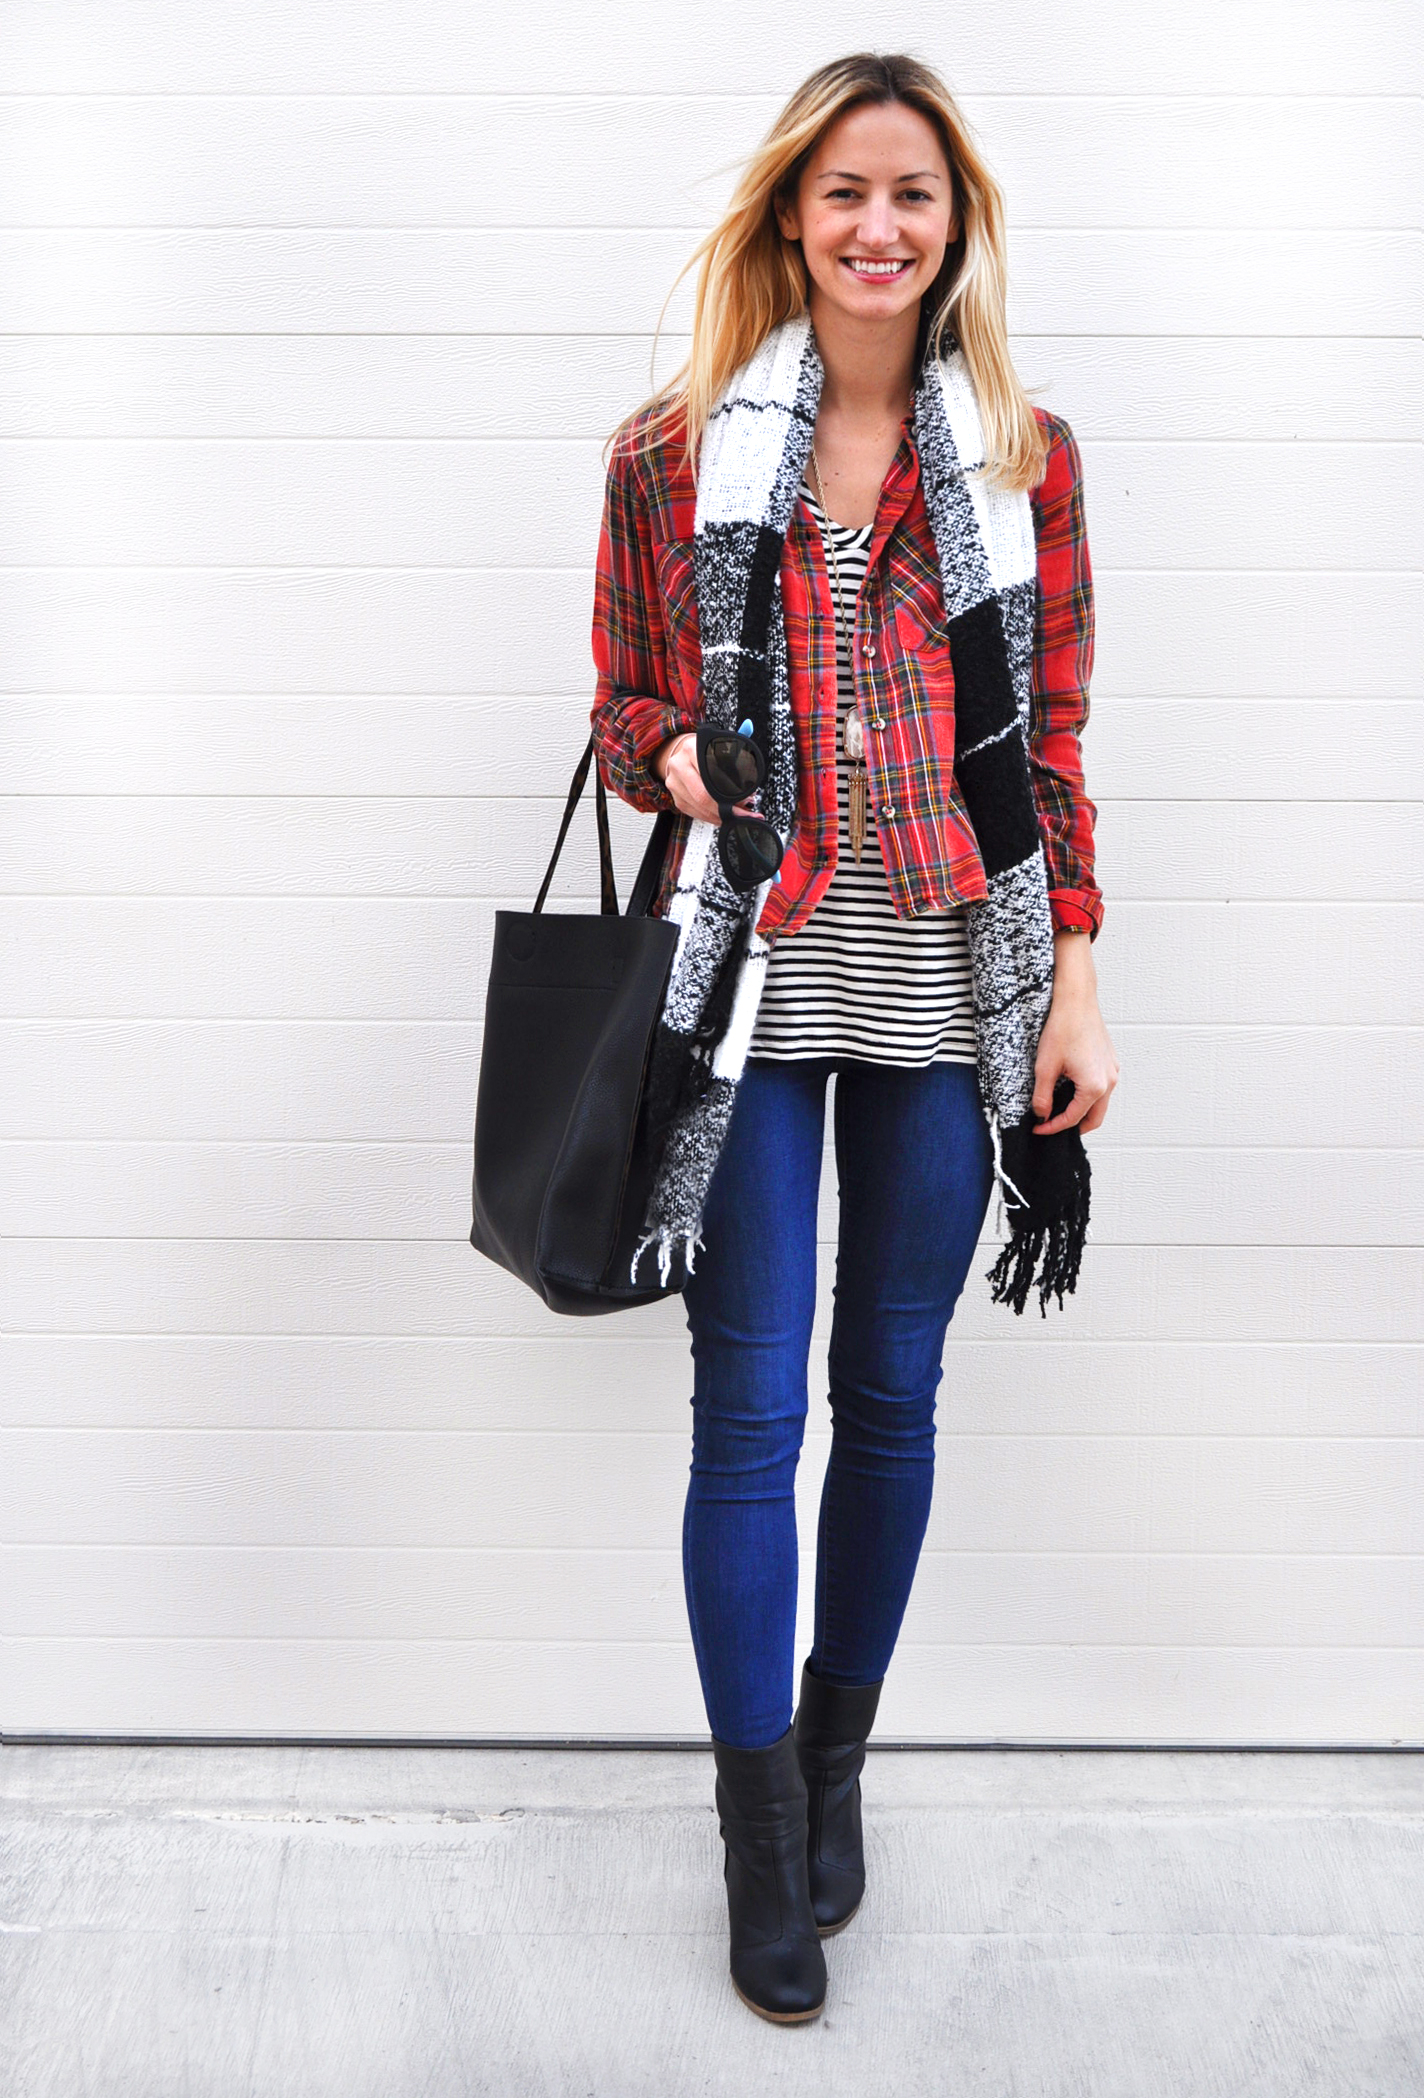 livvyland-blog-olivia-watson-topshop-plaid-top-striped-shirt-leigh-skinny-jeans-winter-layers-kendra-scott-rayne-necklace-white-pearl-austin-texas-fashion-blogger-3